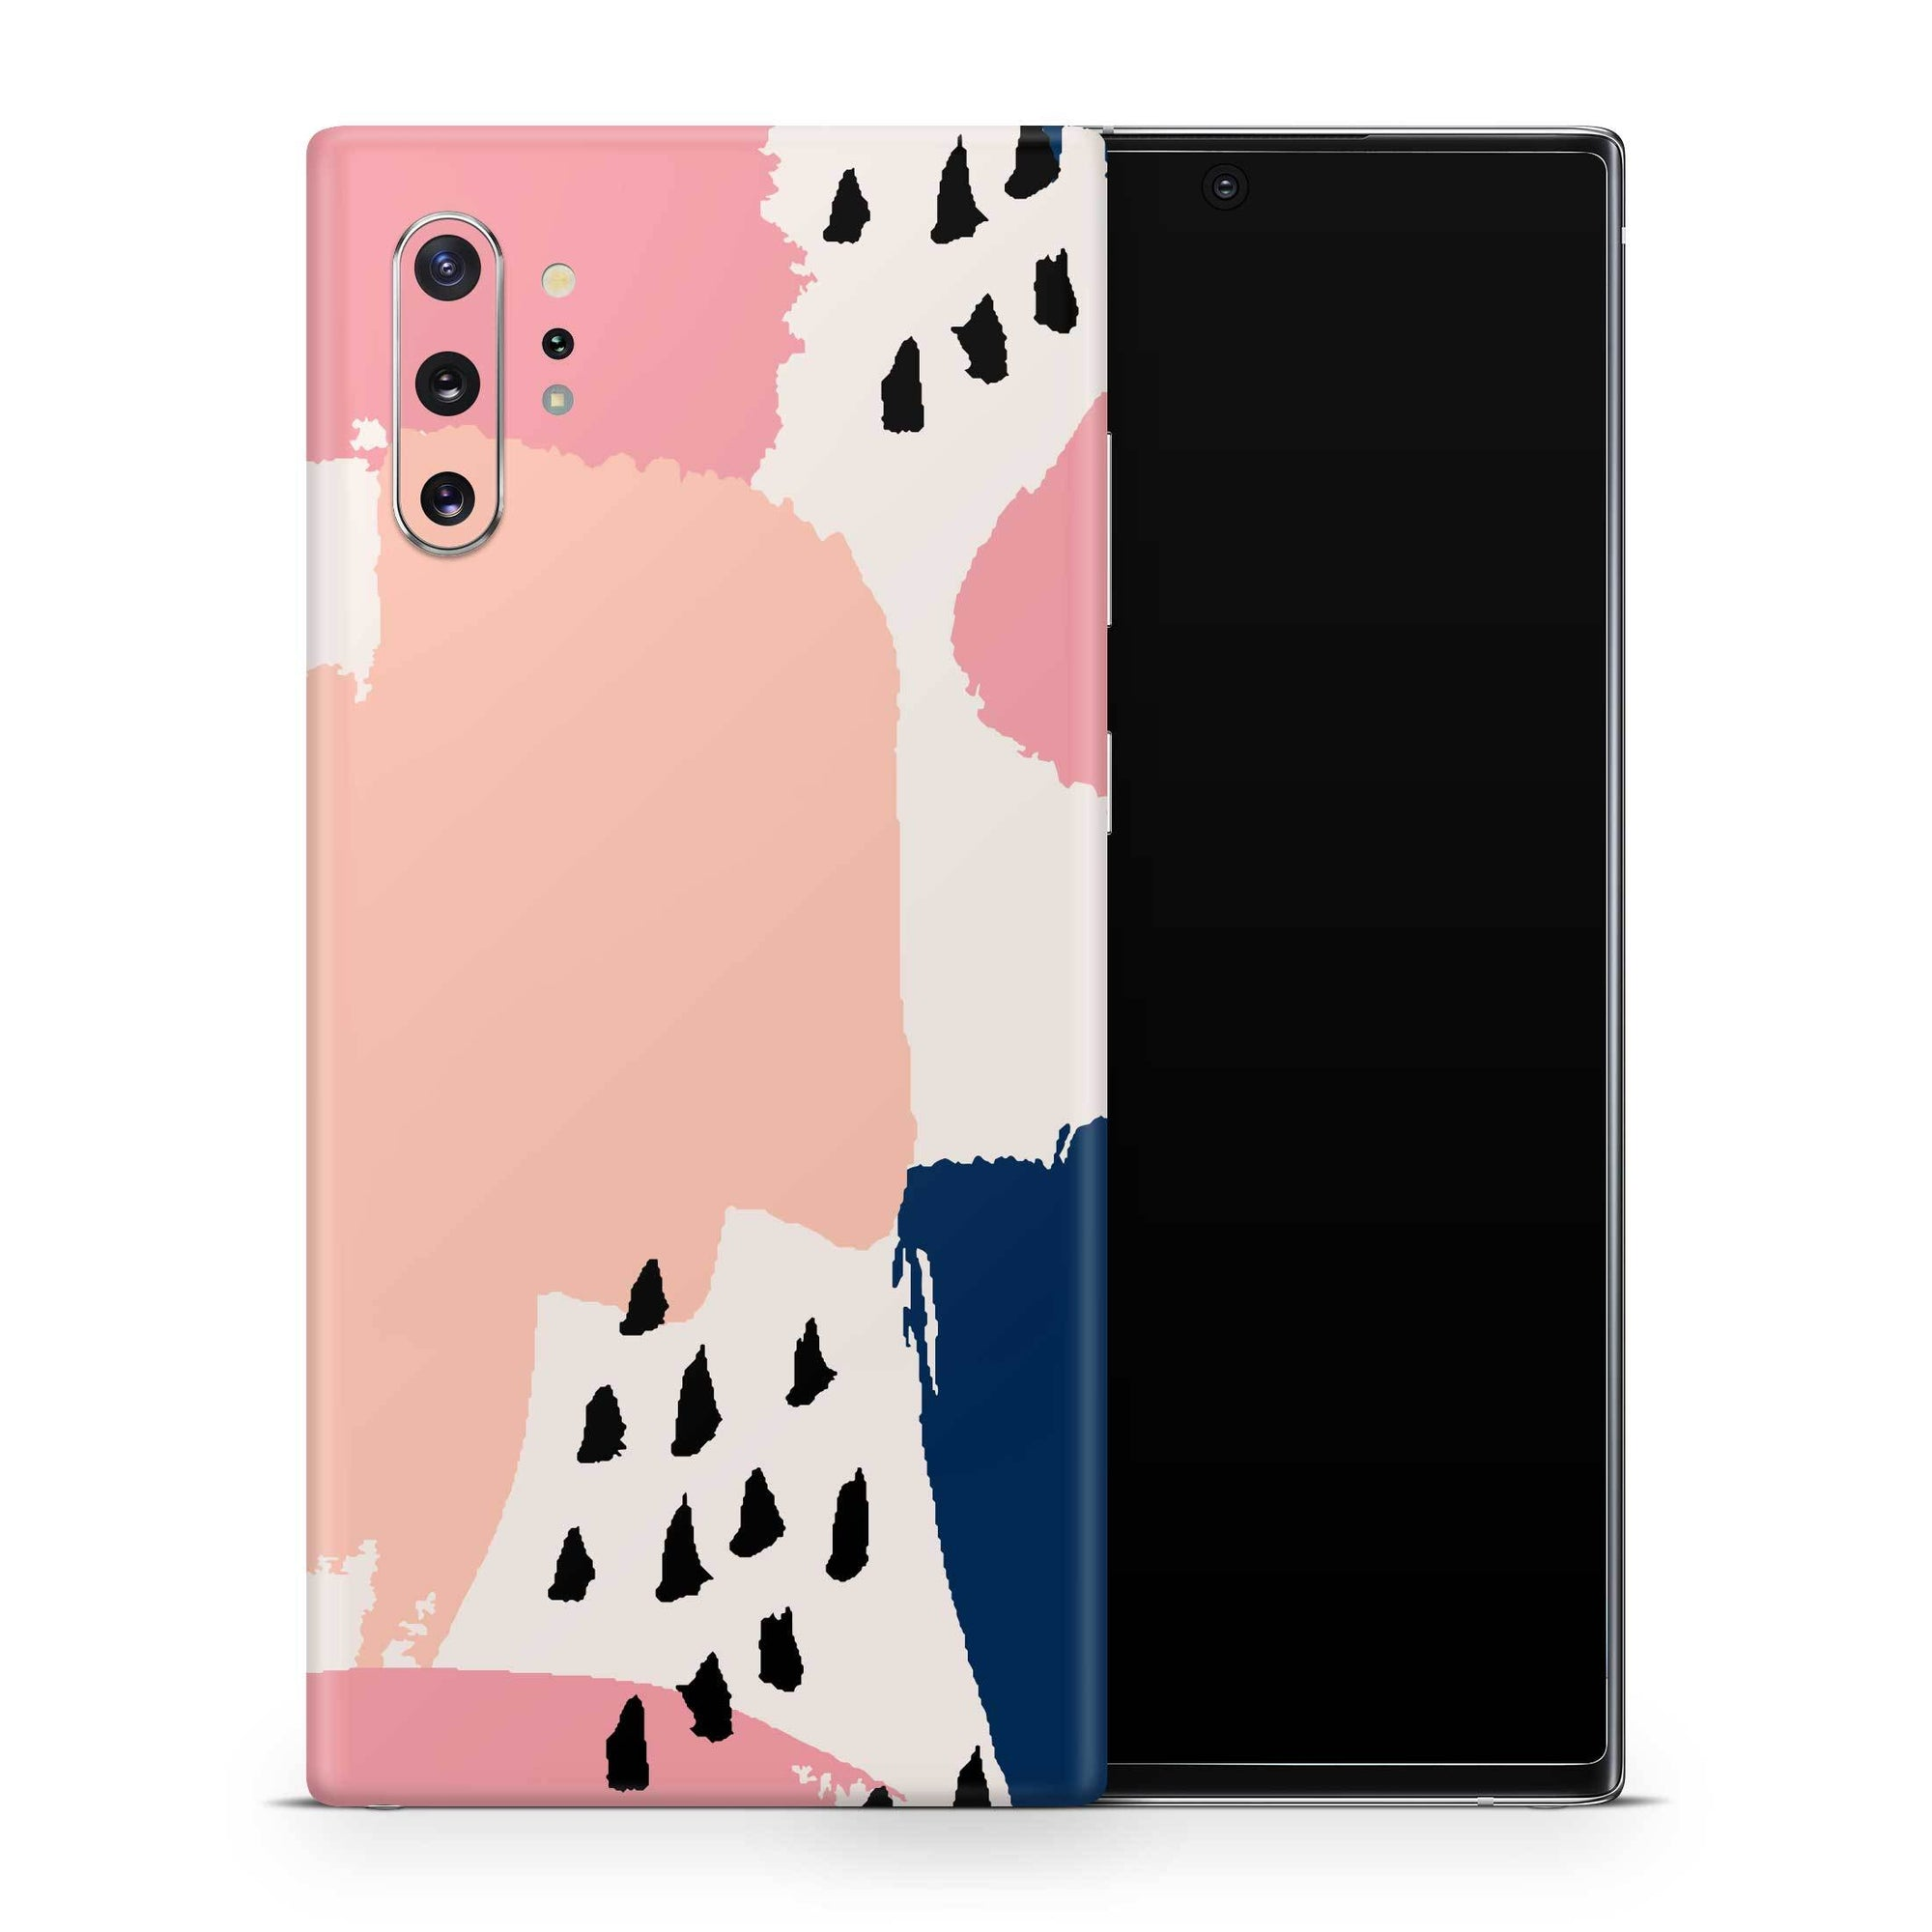 Miami Vice Galaxy Note 10 Plus Skin + Case